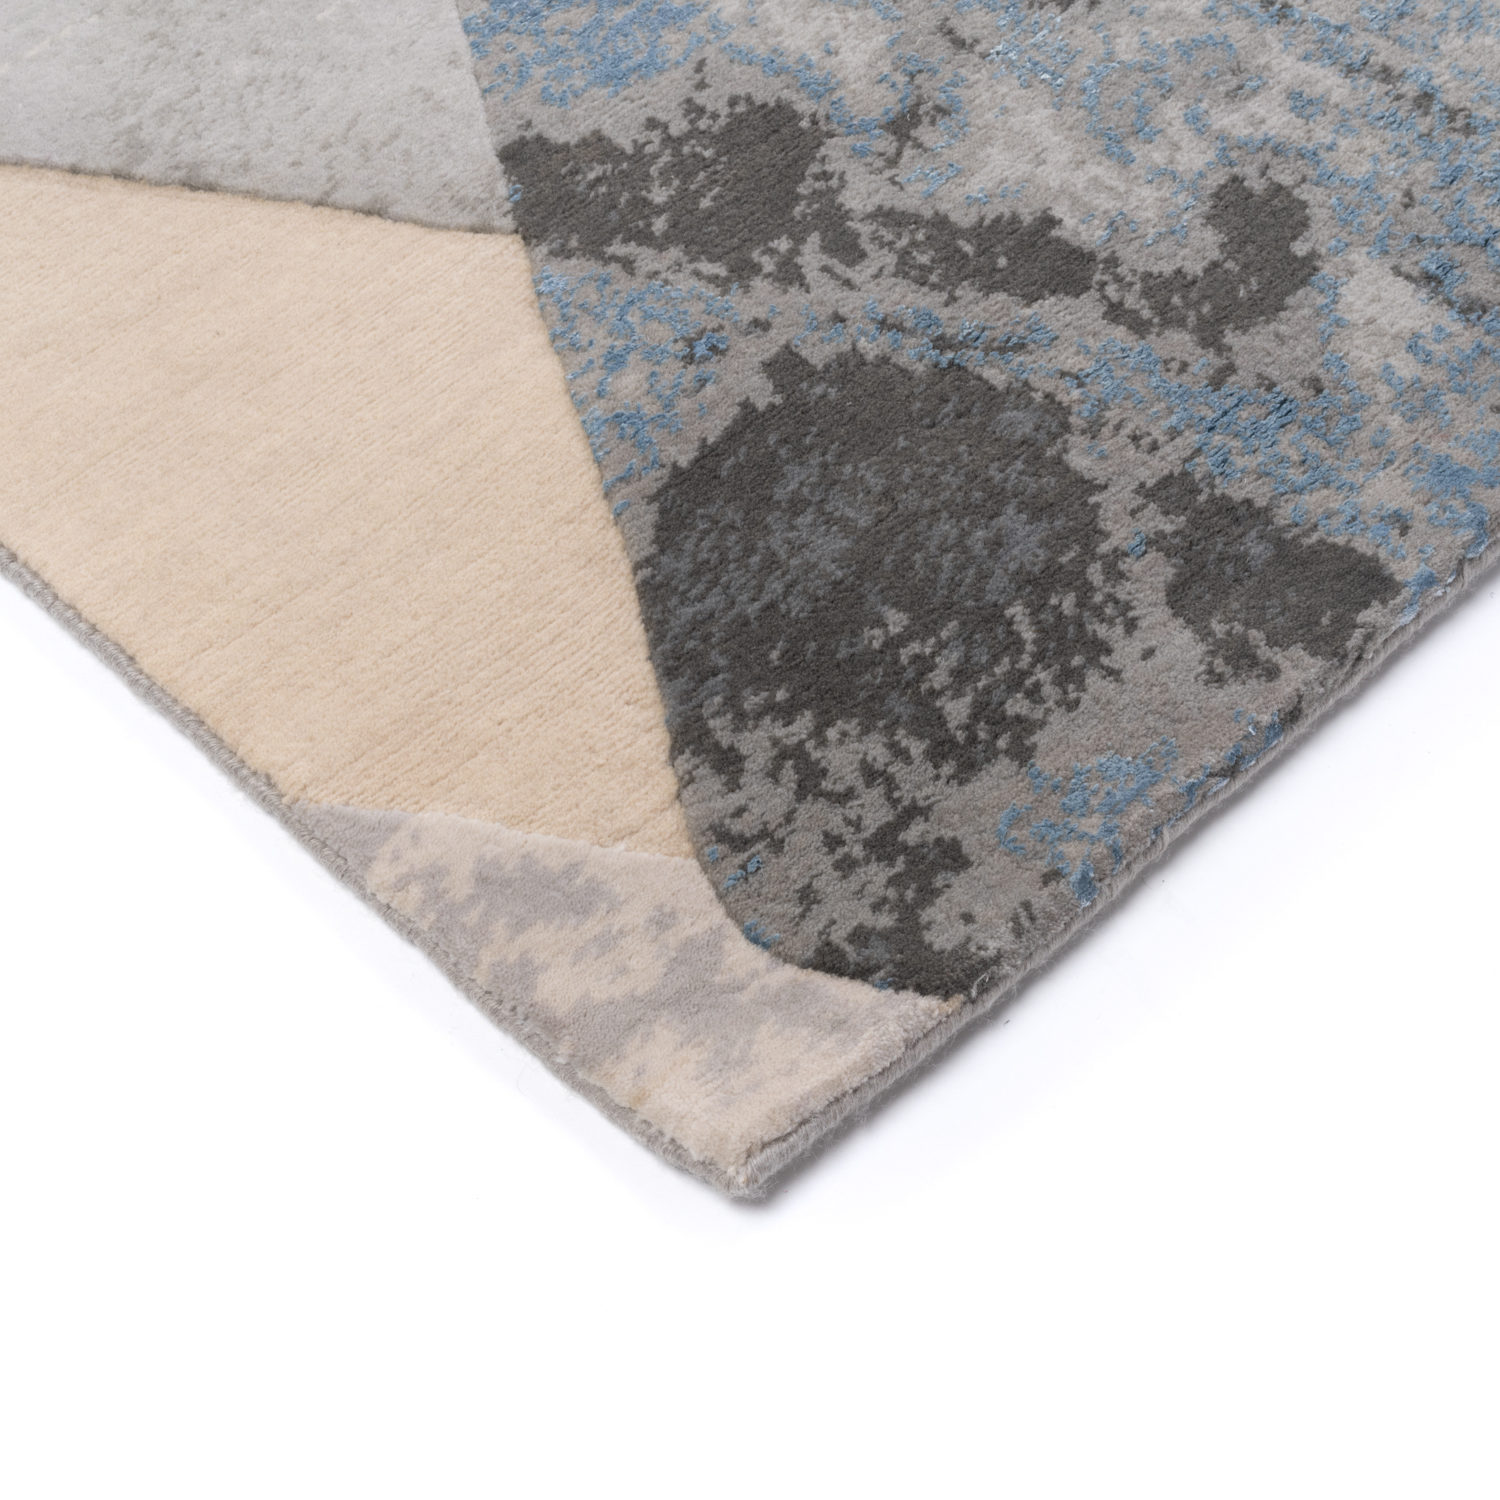 Storm clouds broken by diamonds set this modern rug apart